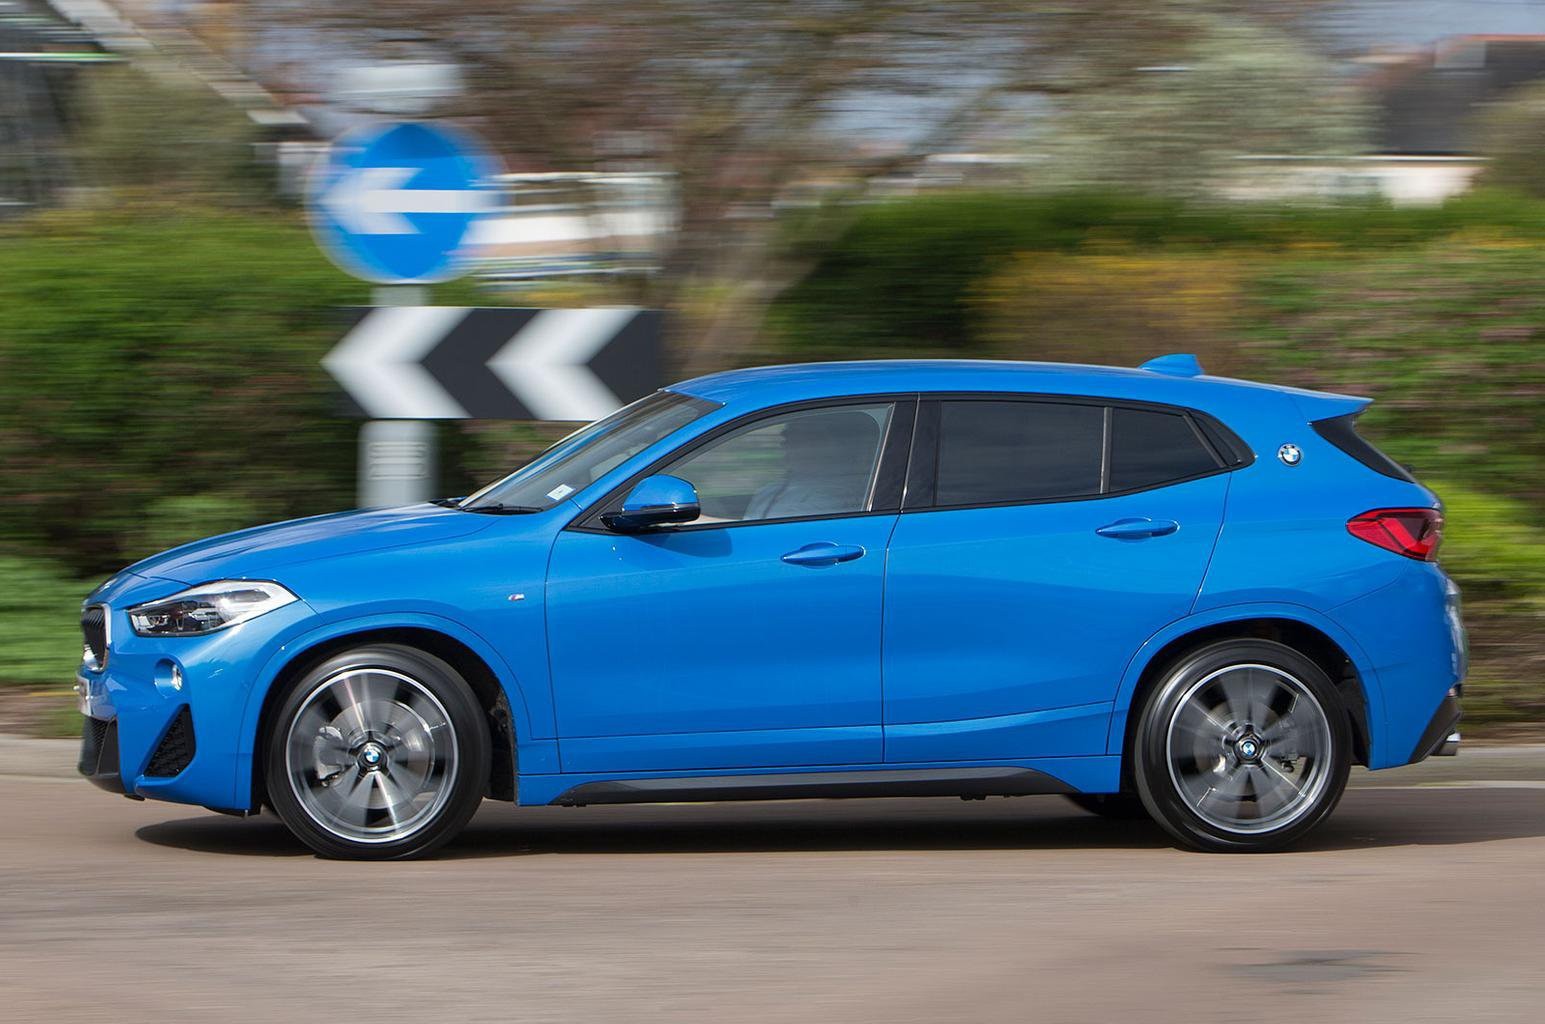 BMW X2 long-term test review